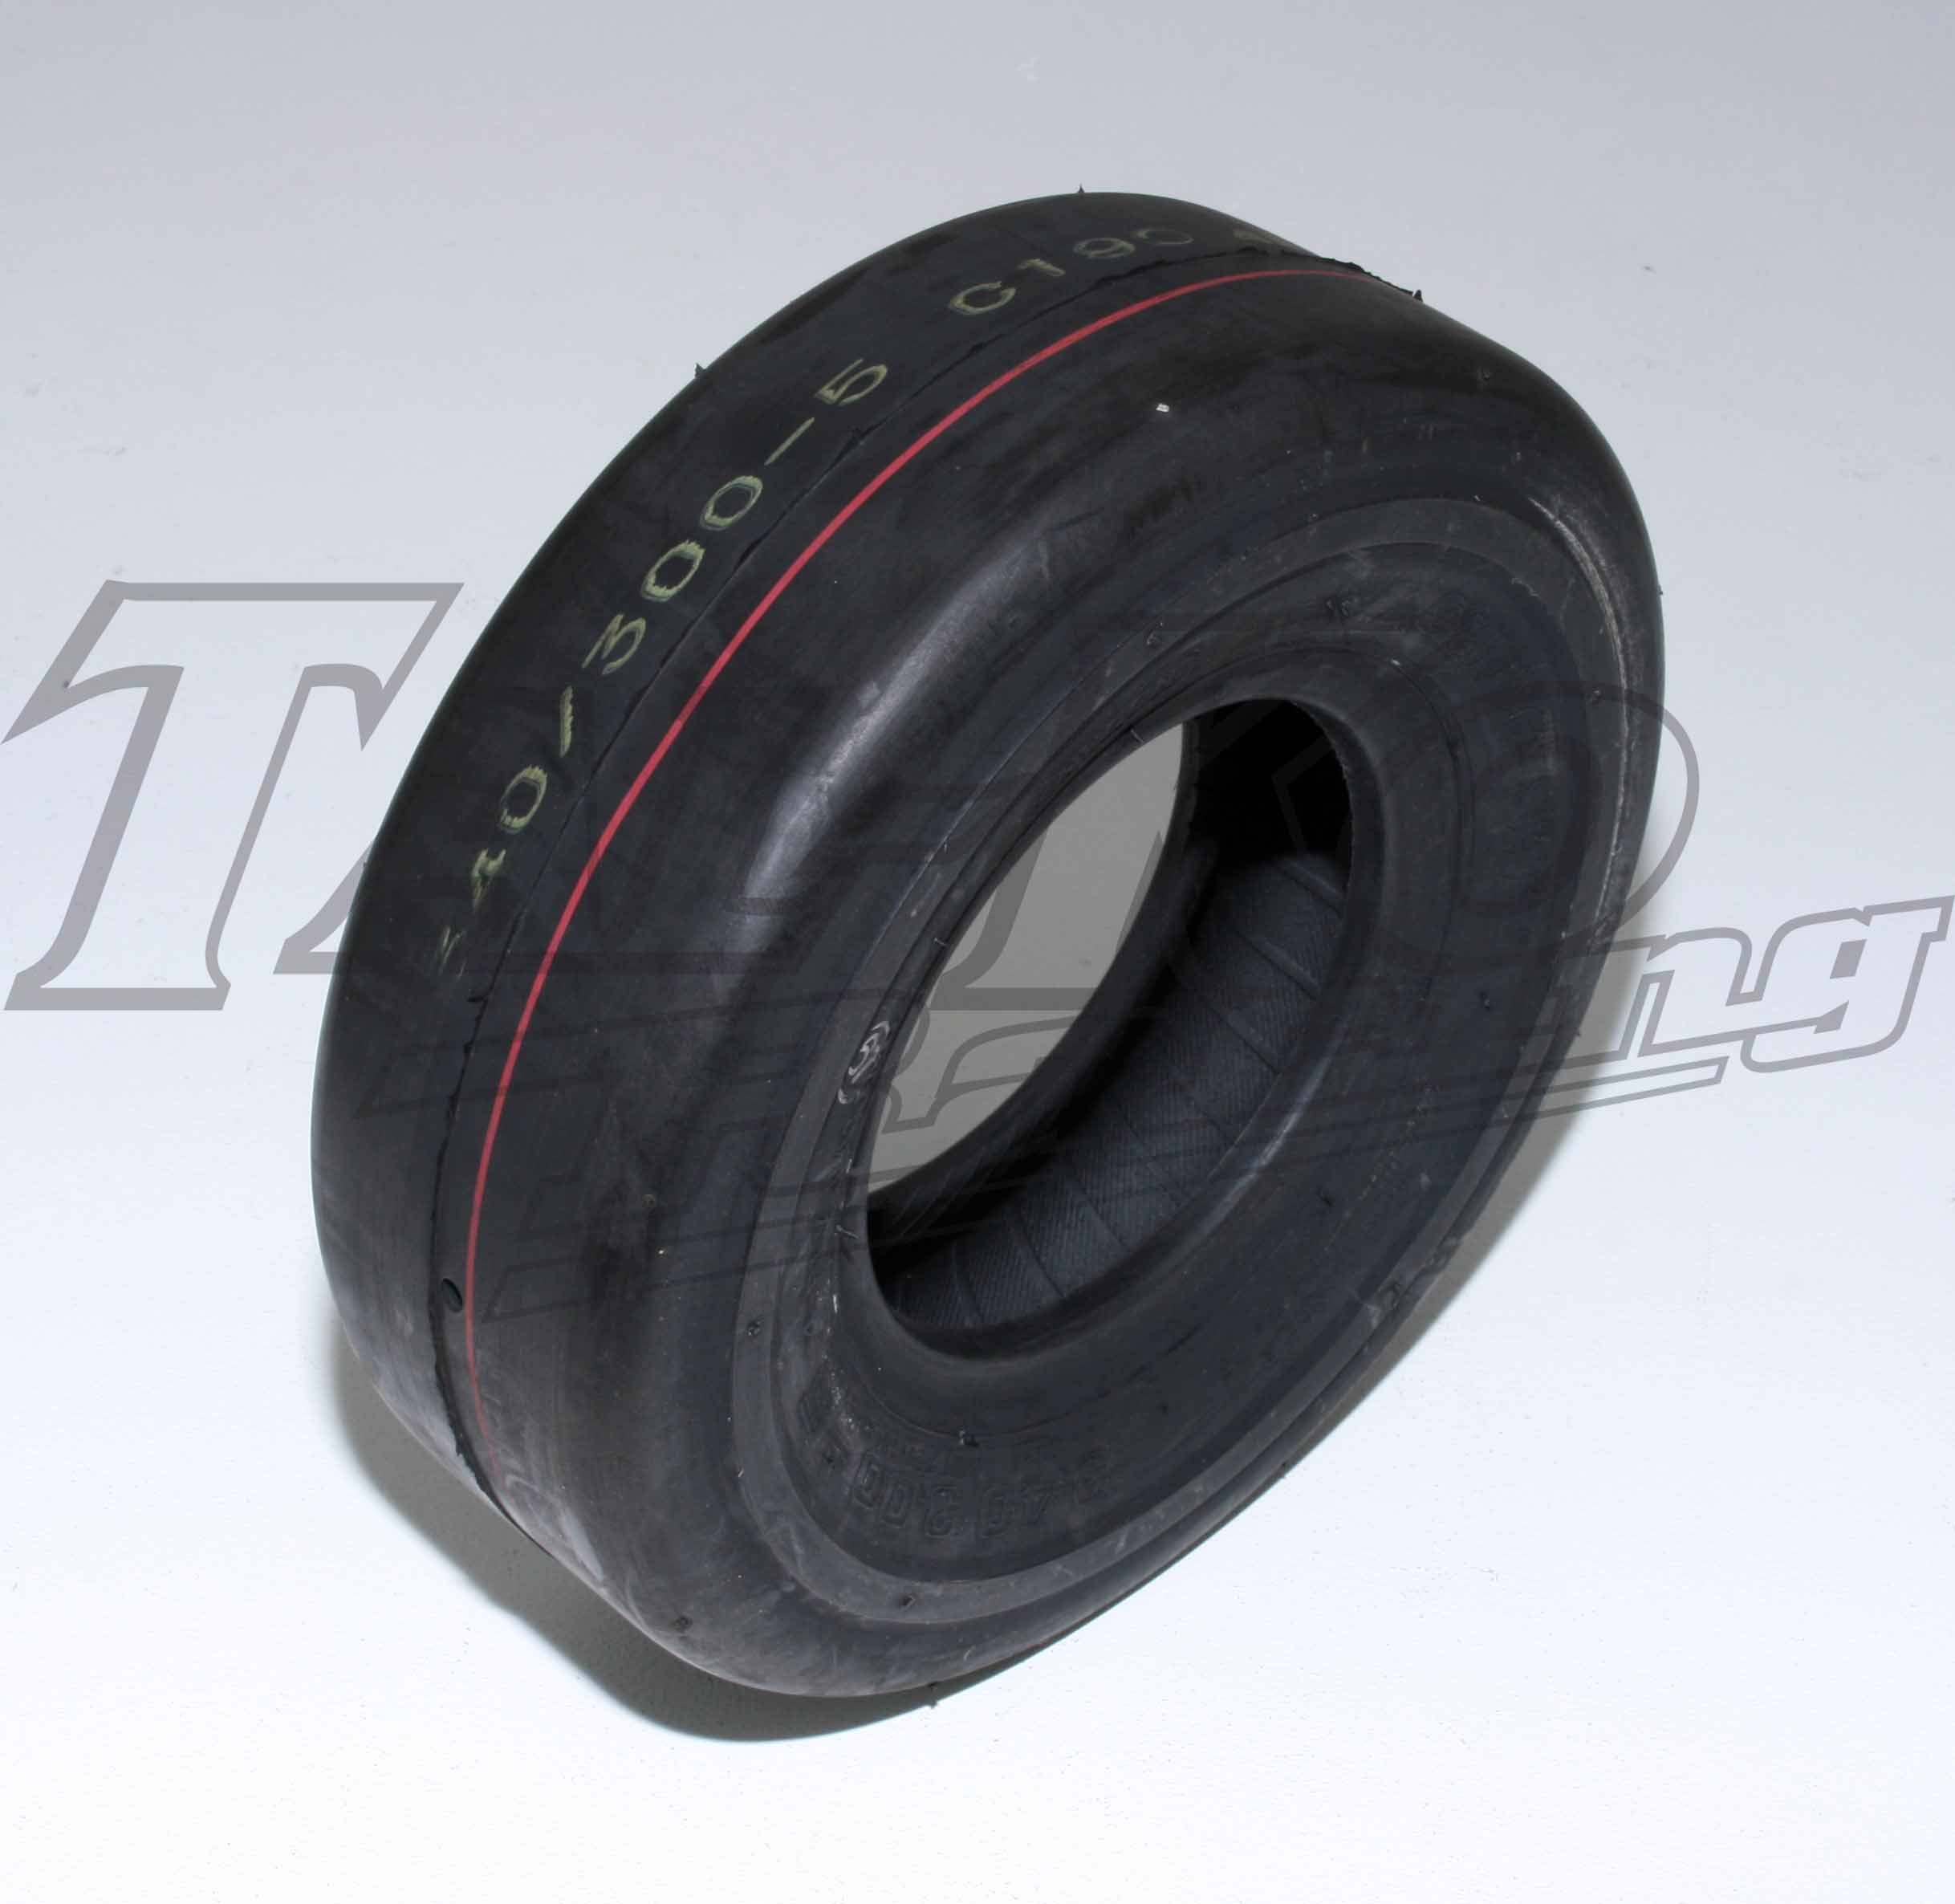 FRONT DRY MAXXIS VINTAGE TYRE